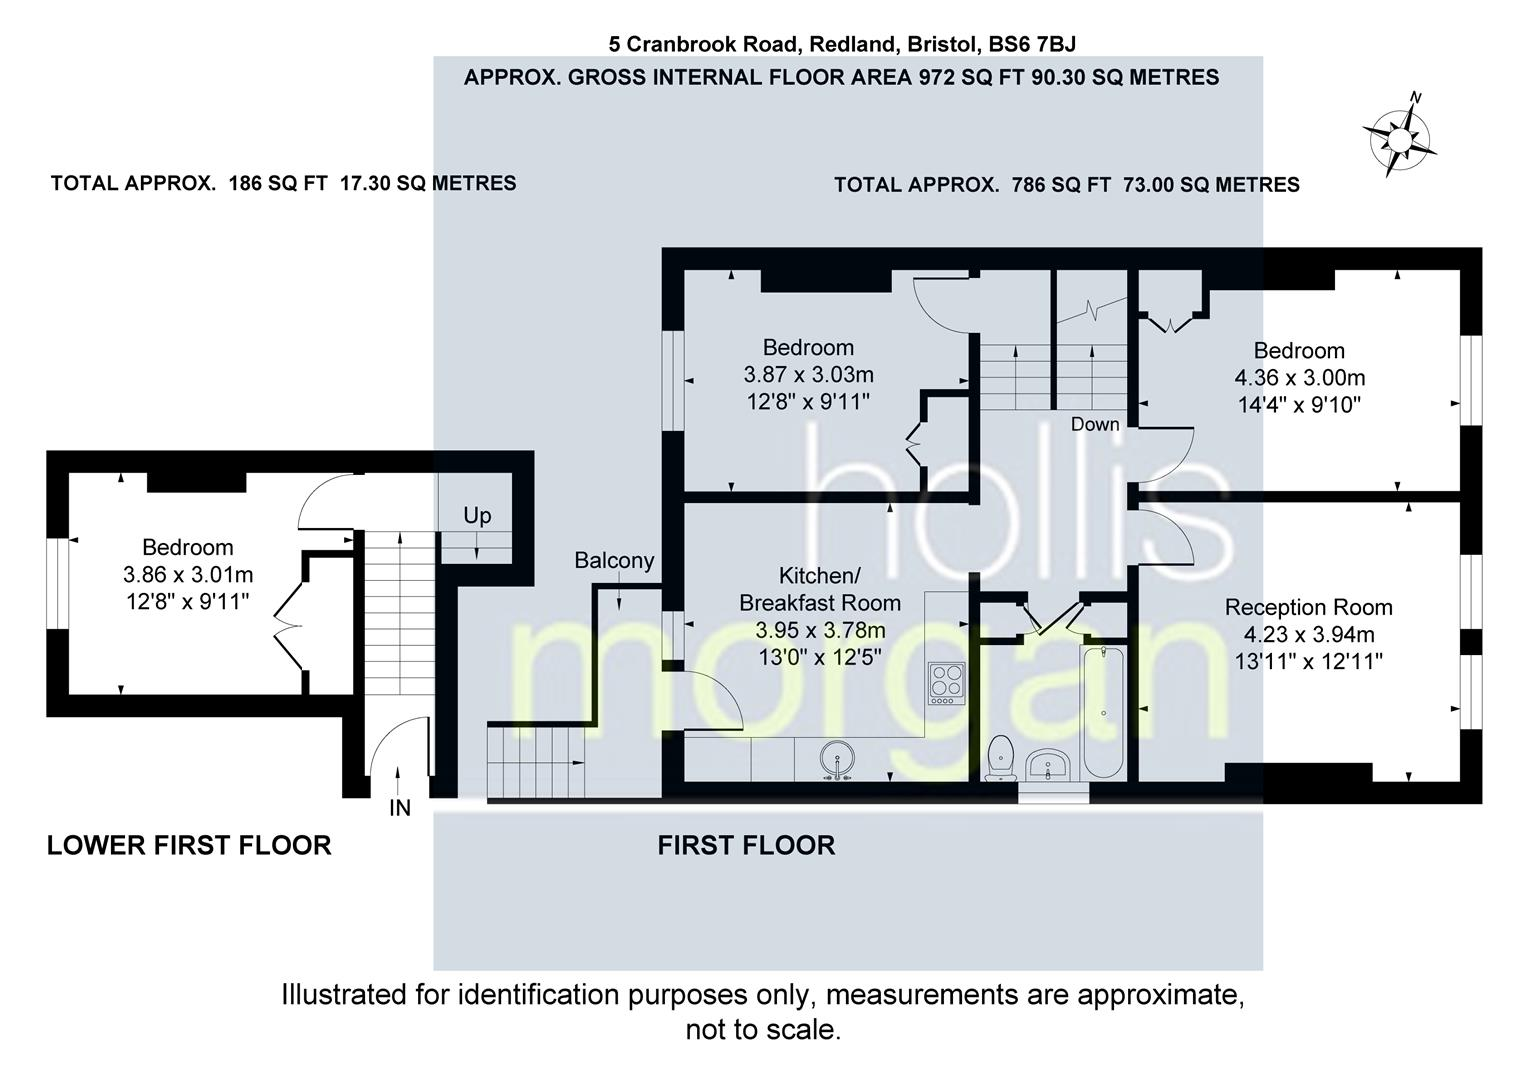 Floorplans For Cranbrook Road, Redland